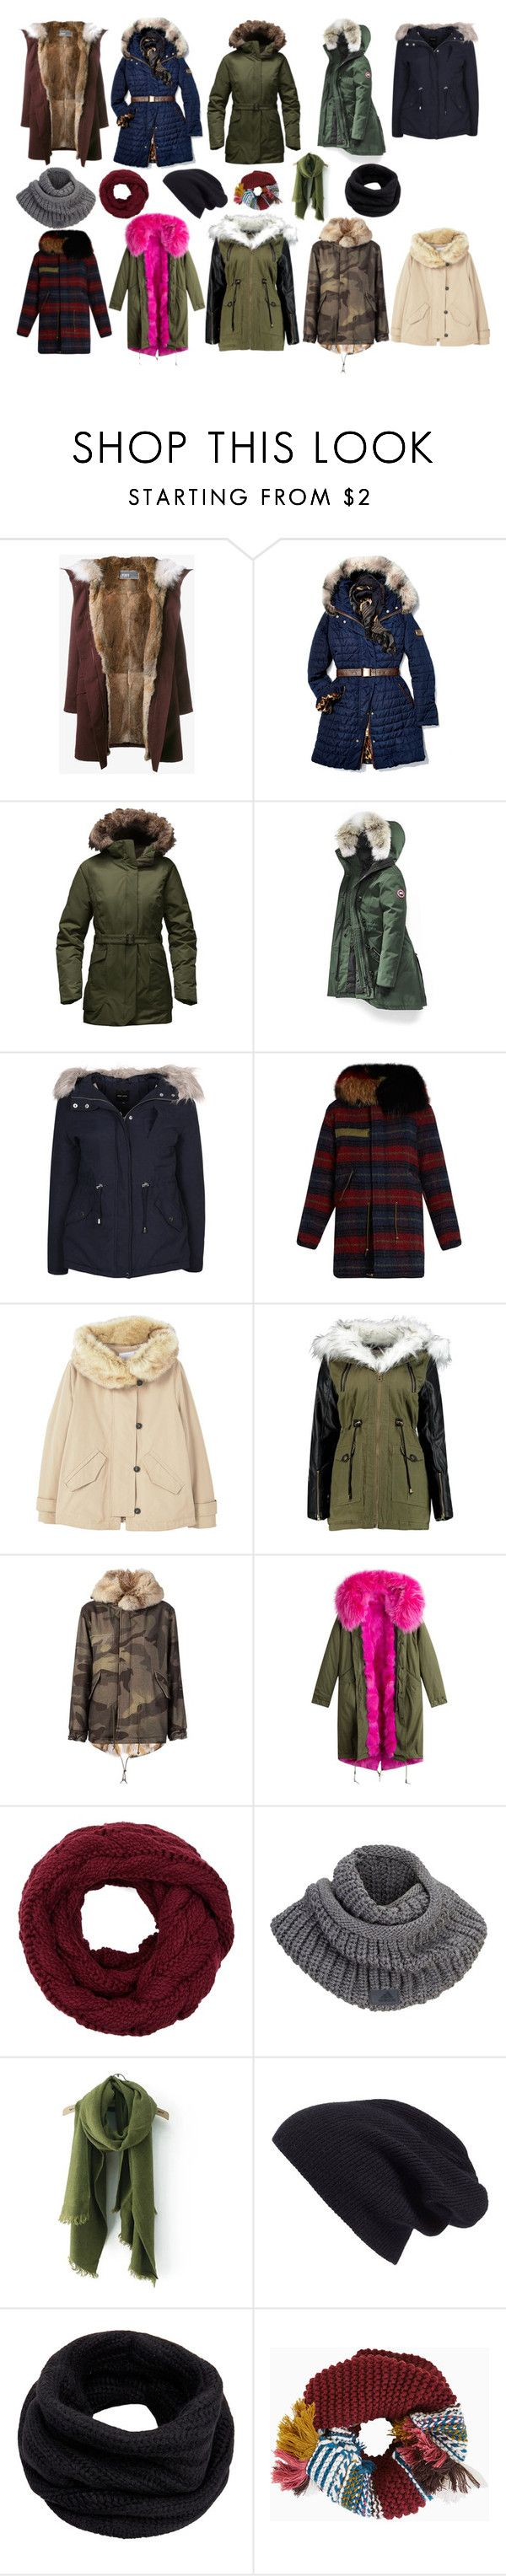 """Polar Vortex Parka Party !"" by sassyethnicboho ❤ liked on Polyvore featuring Yves Salomon, Gorski, The North Face, Canada Goose, New Look, Mr & Mrs Italy, MANGO, adidas, Halogen and Helmut Lang"